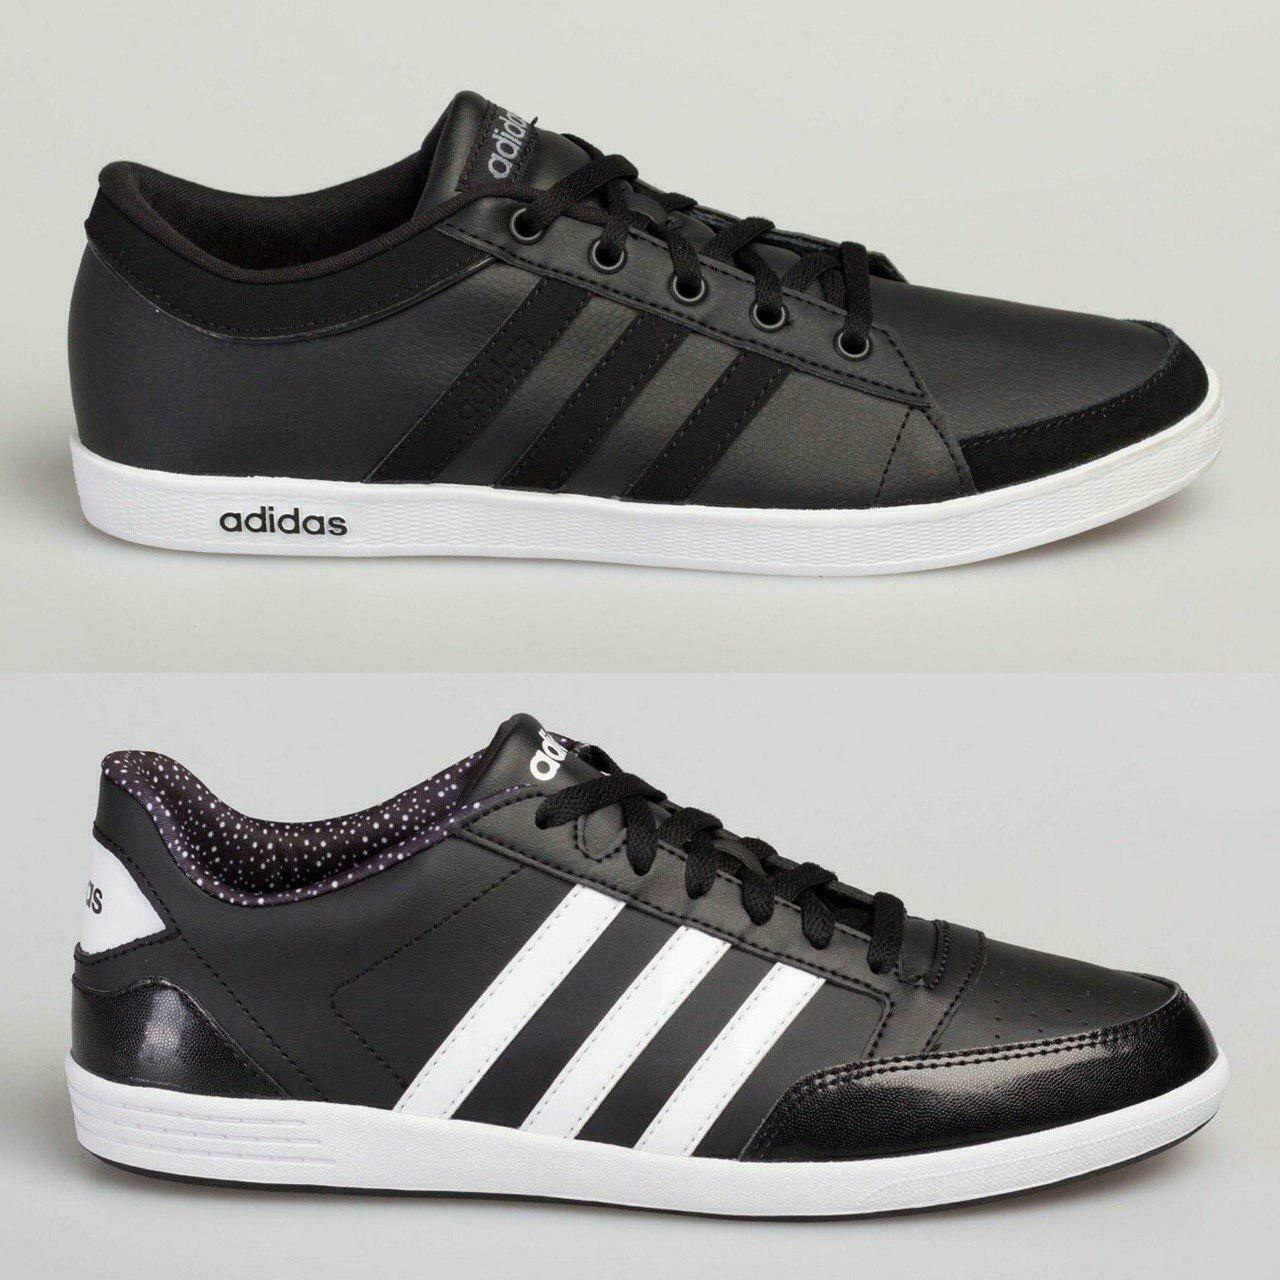 Details about Adidas Men's Women's Leather Trainers Calneo Lite Racer Hoops VL Black White